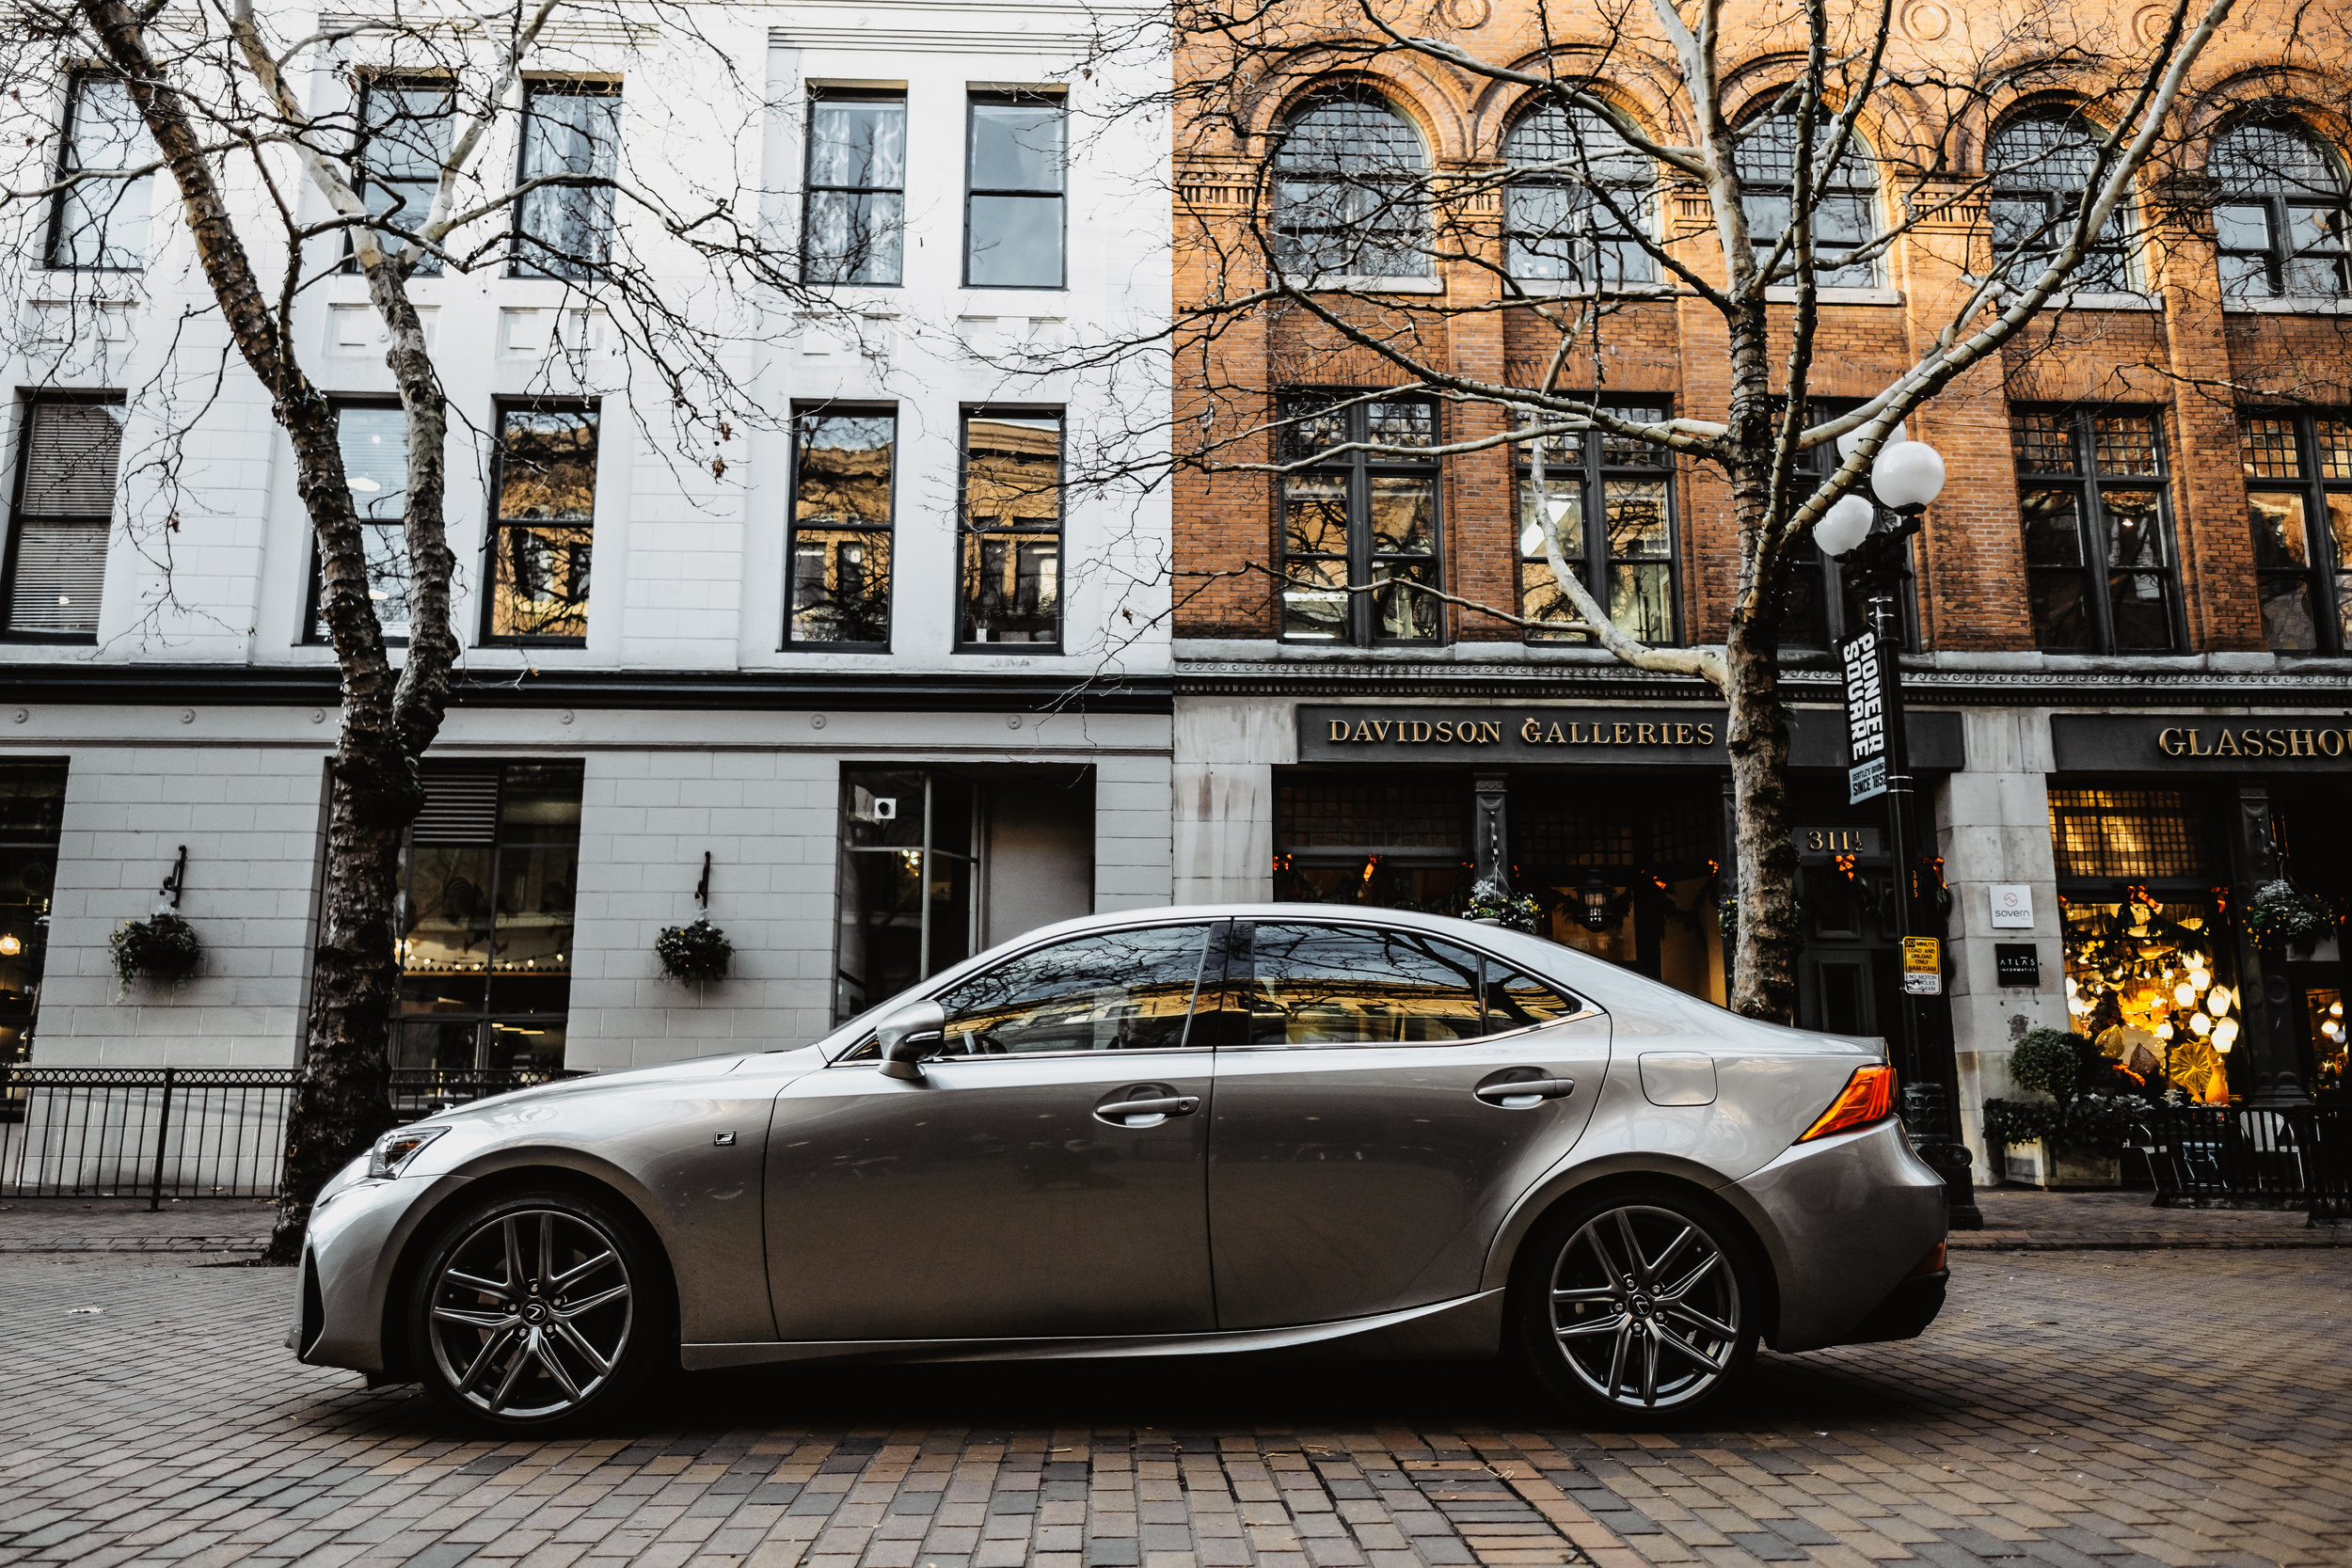 Lexus IS350 F Sport Ad - Seattle - Justin Clark Photography - Lifestyle -3328.jpg